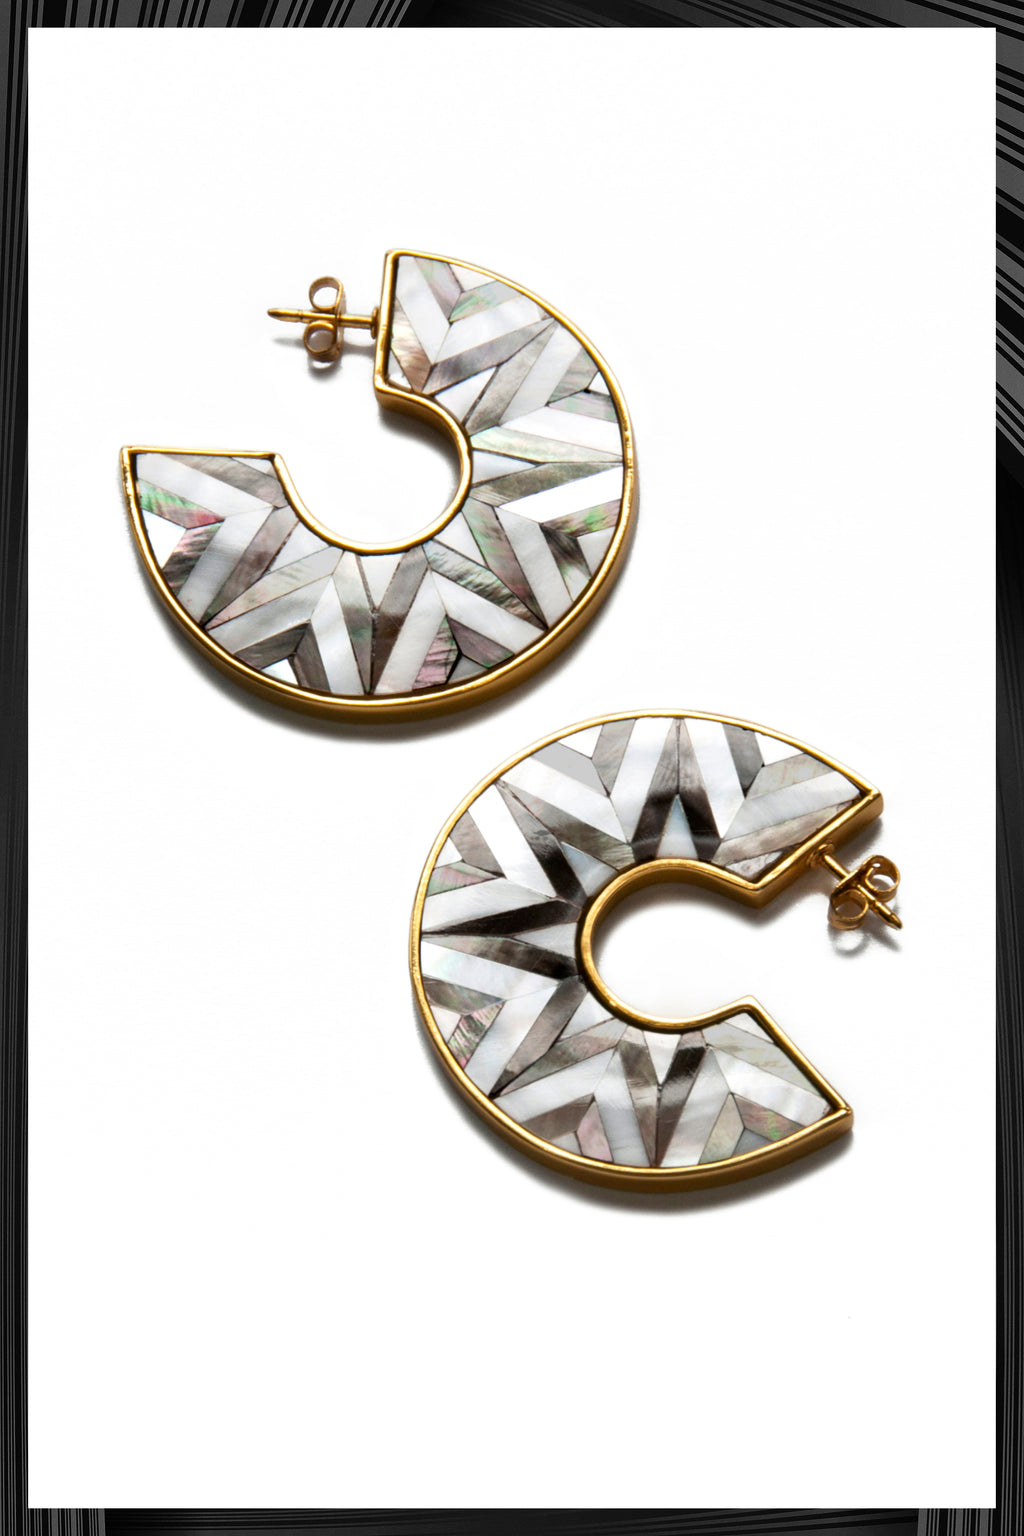 Alunsia Earrings | Free Delivery - 3-4 Weeks Shipping